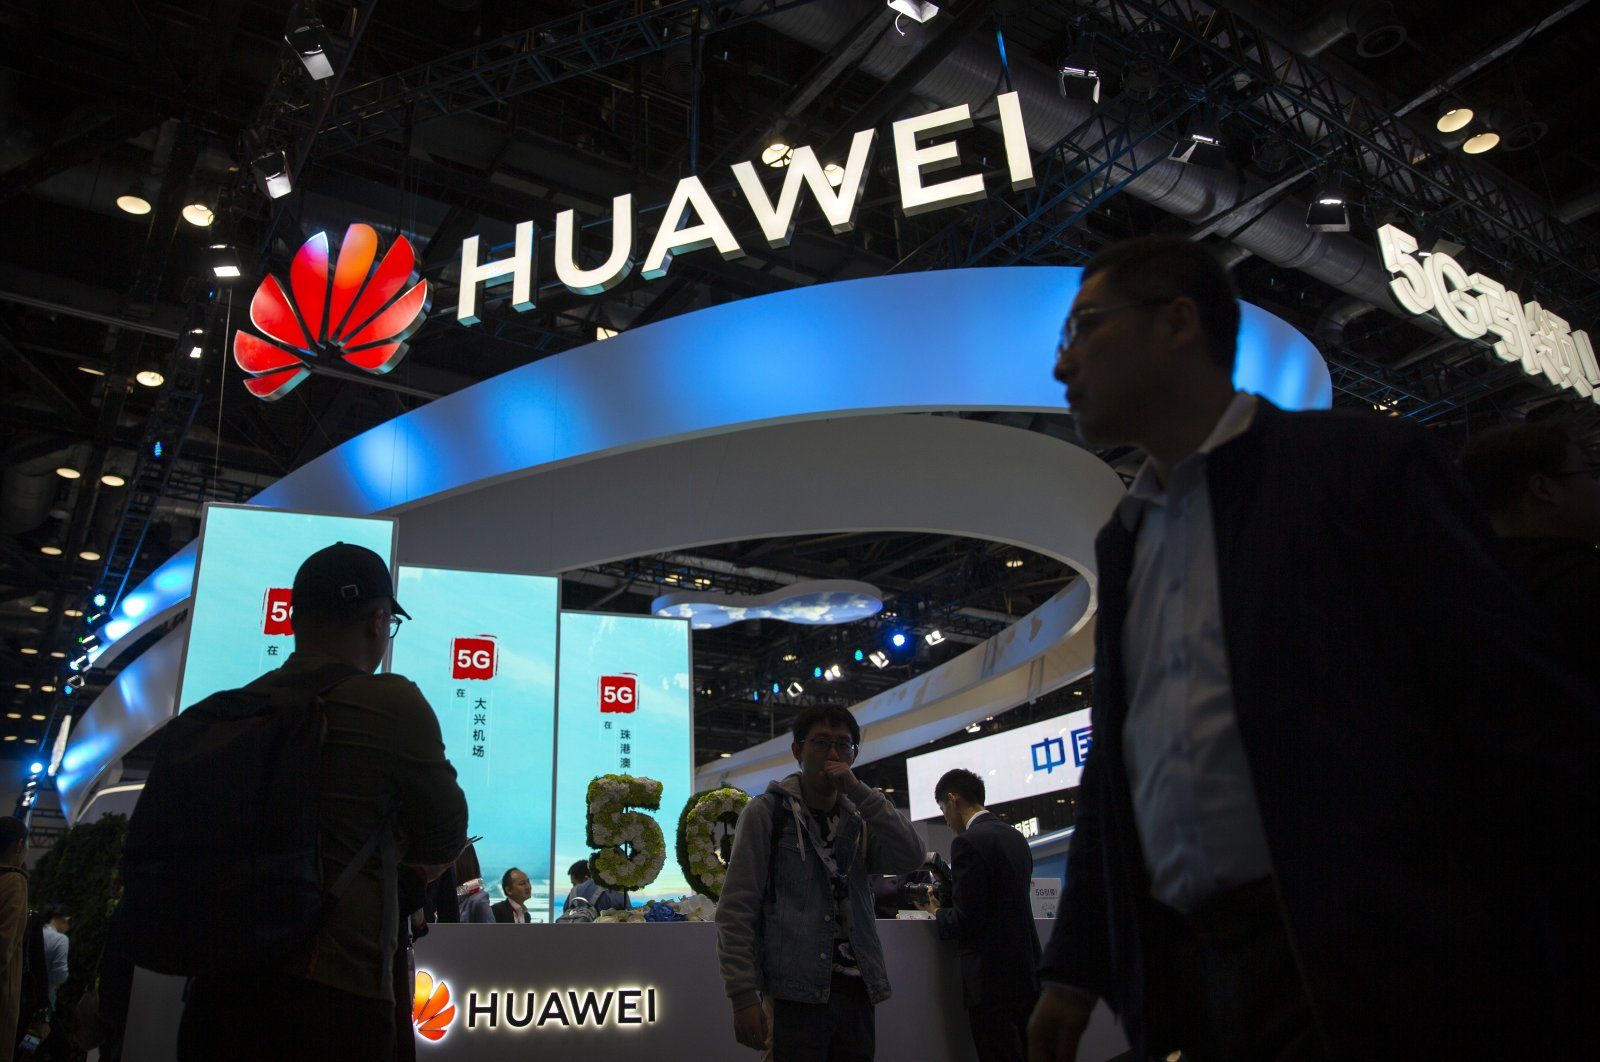 Attendees walk past a display for 5G services from Chinese technology firm Huawei at the PT Expo in Beijing, China, Oct. 31, 2019. (AP Photo)